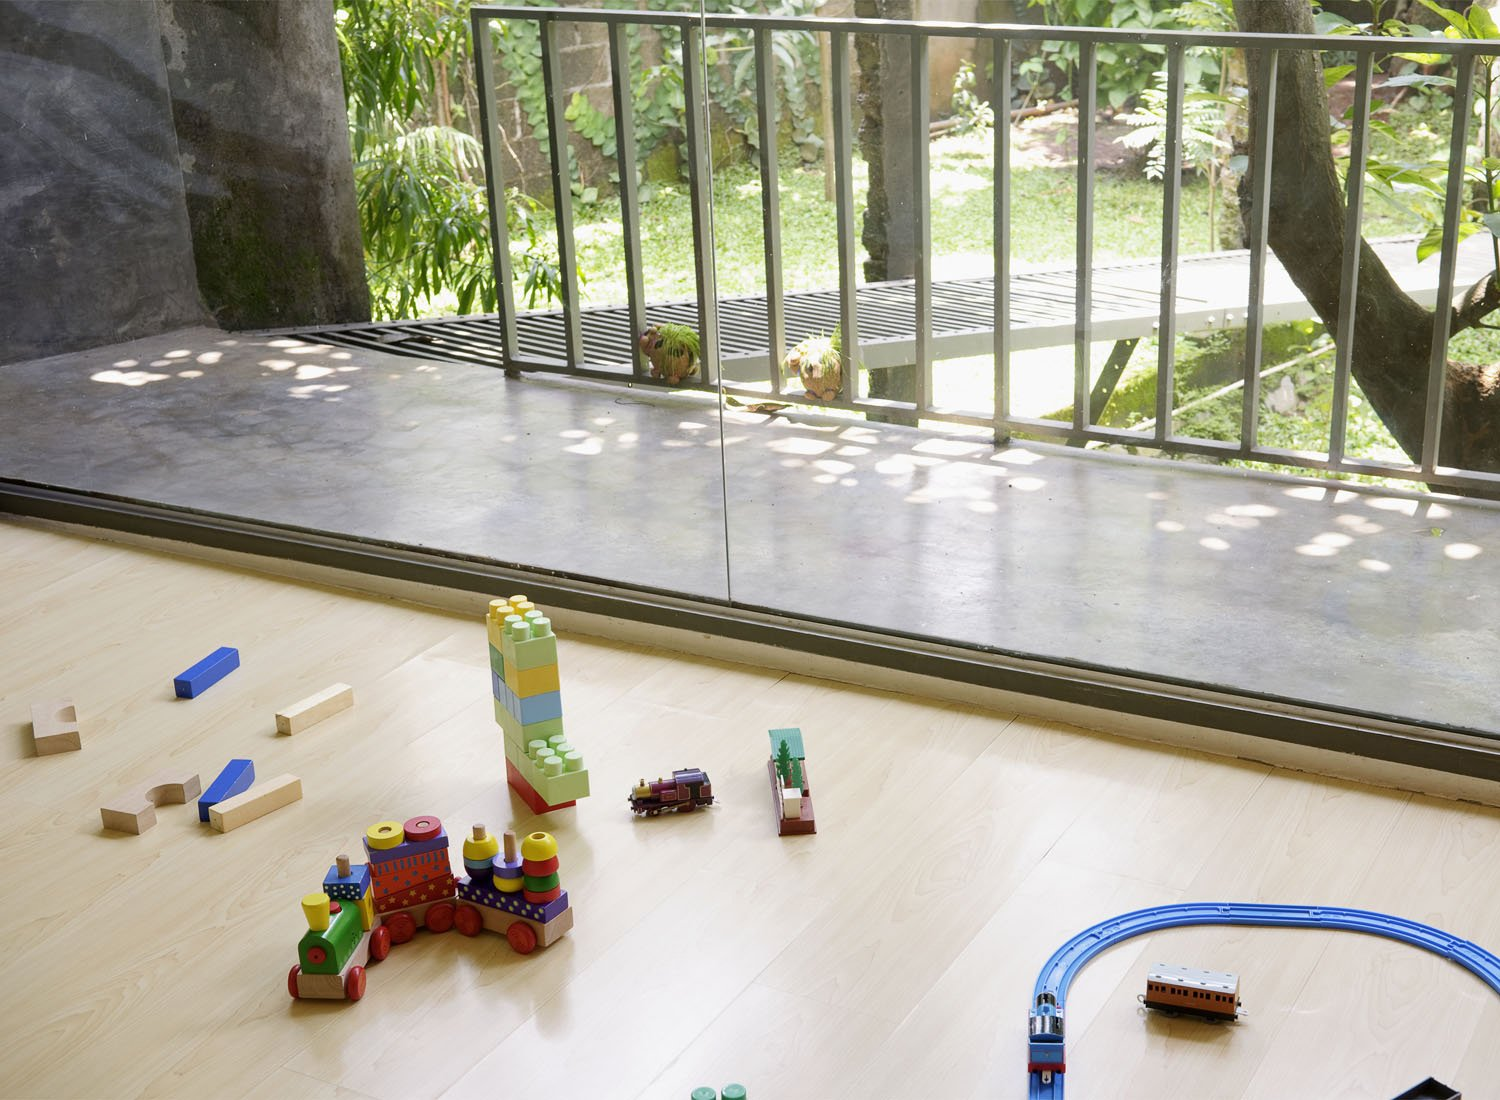 The family room upstairs is the heart of family live at the Wisnu residence. The view to the private backyard gives a sense of serenity, even if the kids' toys find their way across the floor.  Photo 20 of 26 in Humid City, Cool Home